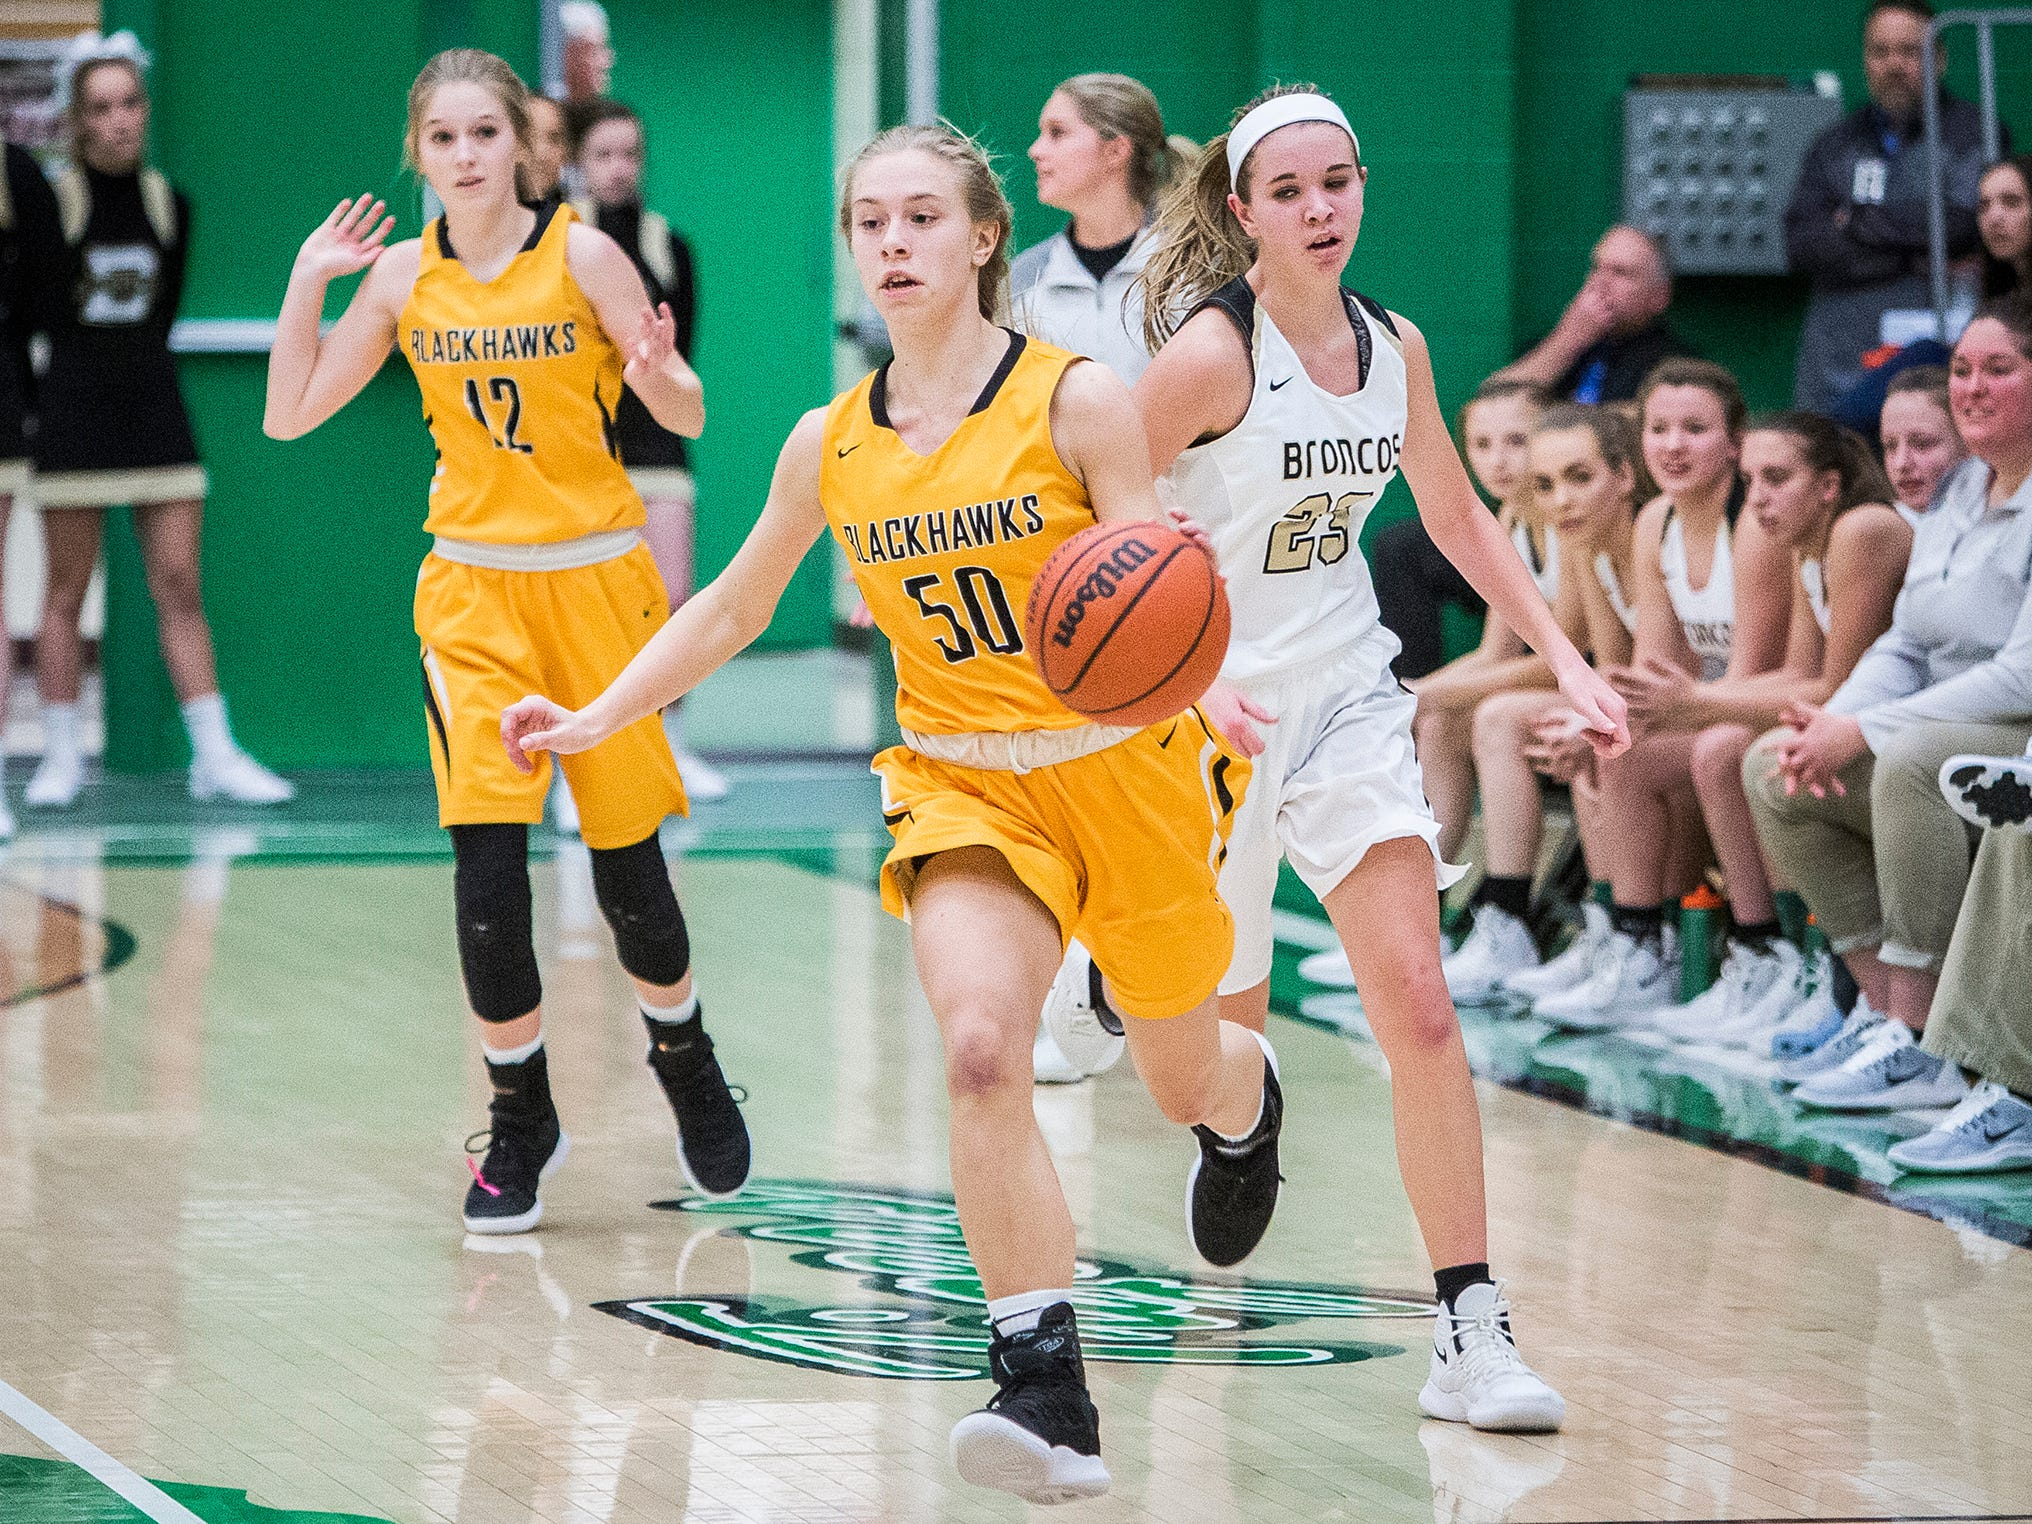 Cowan's Elizabeth Clevenger dribbles past Daleville's defense during their game at Yorktown High School Tuesday, Jan. 8, 2019.